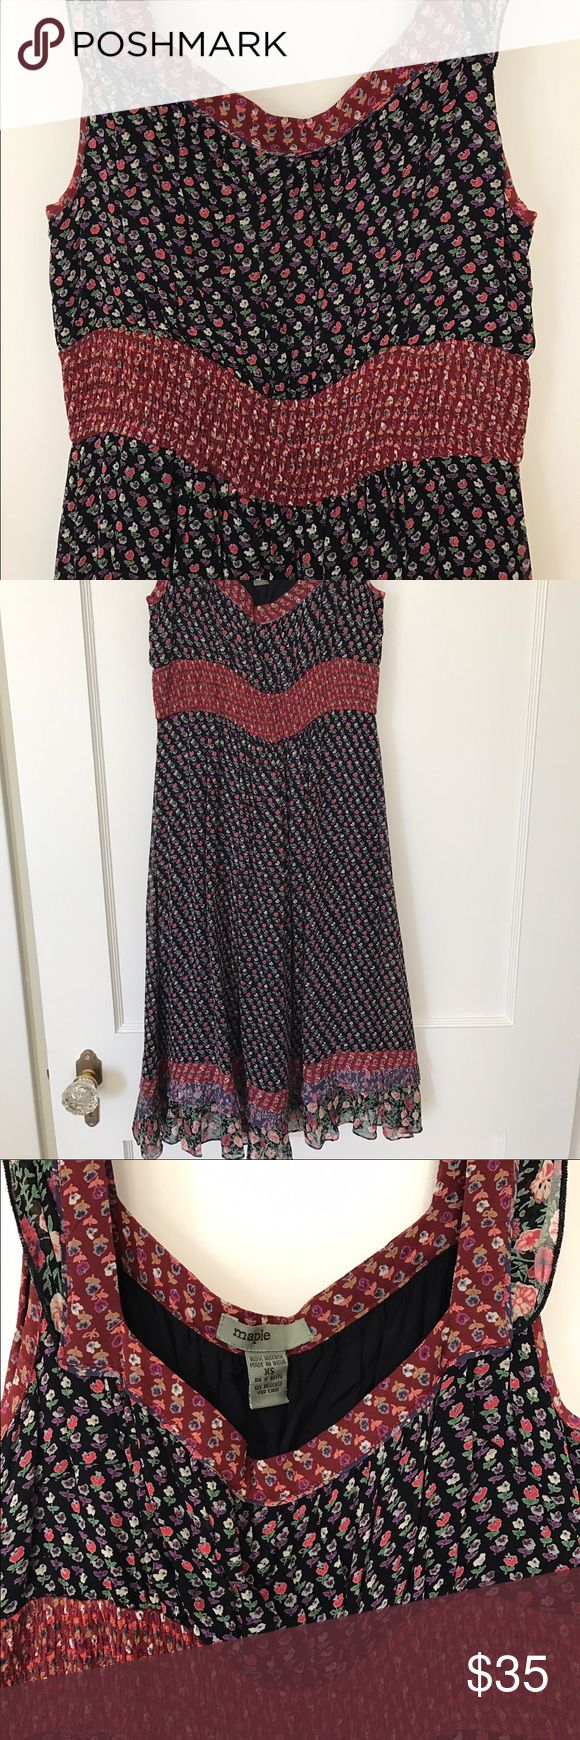 Anthropologie - Floral Summer Dress Women's XS floral summer dress bought at Anthropologie, 100% Viscose, machine washable, Made in India. Hits just below the knee. Dark navy blue lining underneath. Like new, never worn. Questions, comments let me know. Anthropologie Dresses Midi